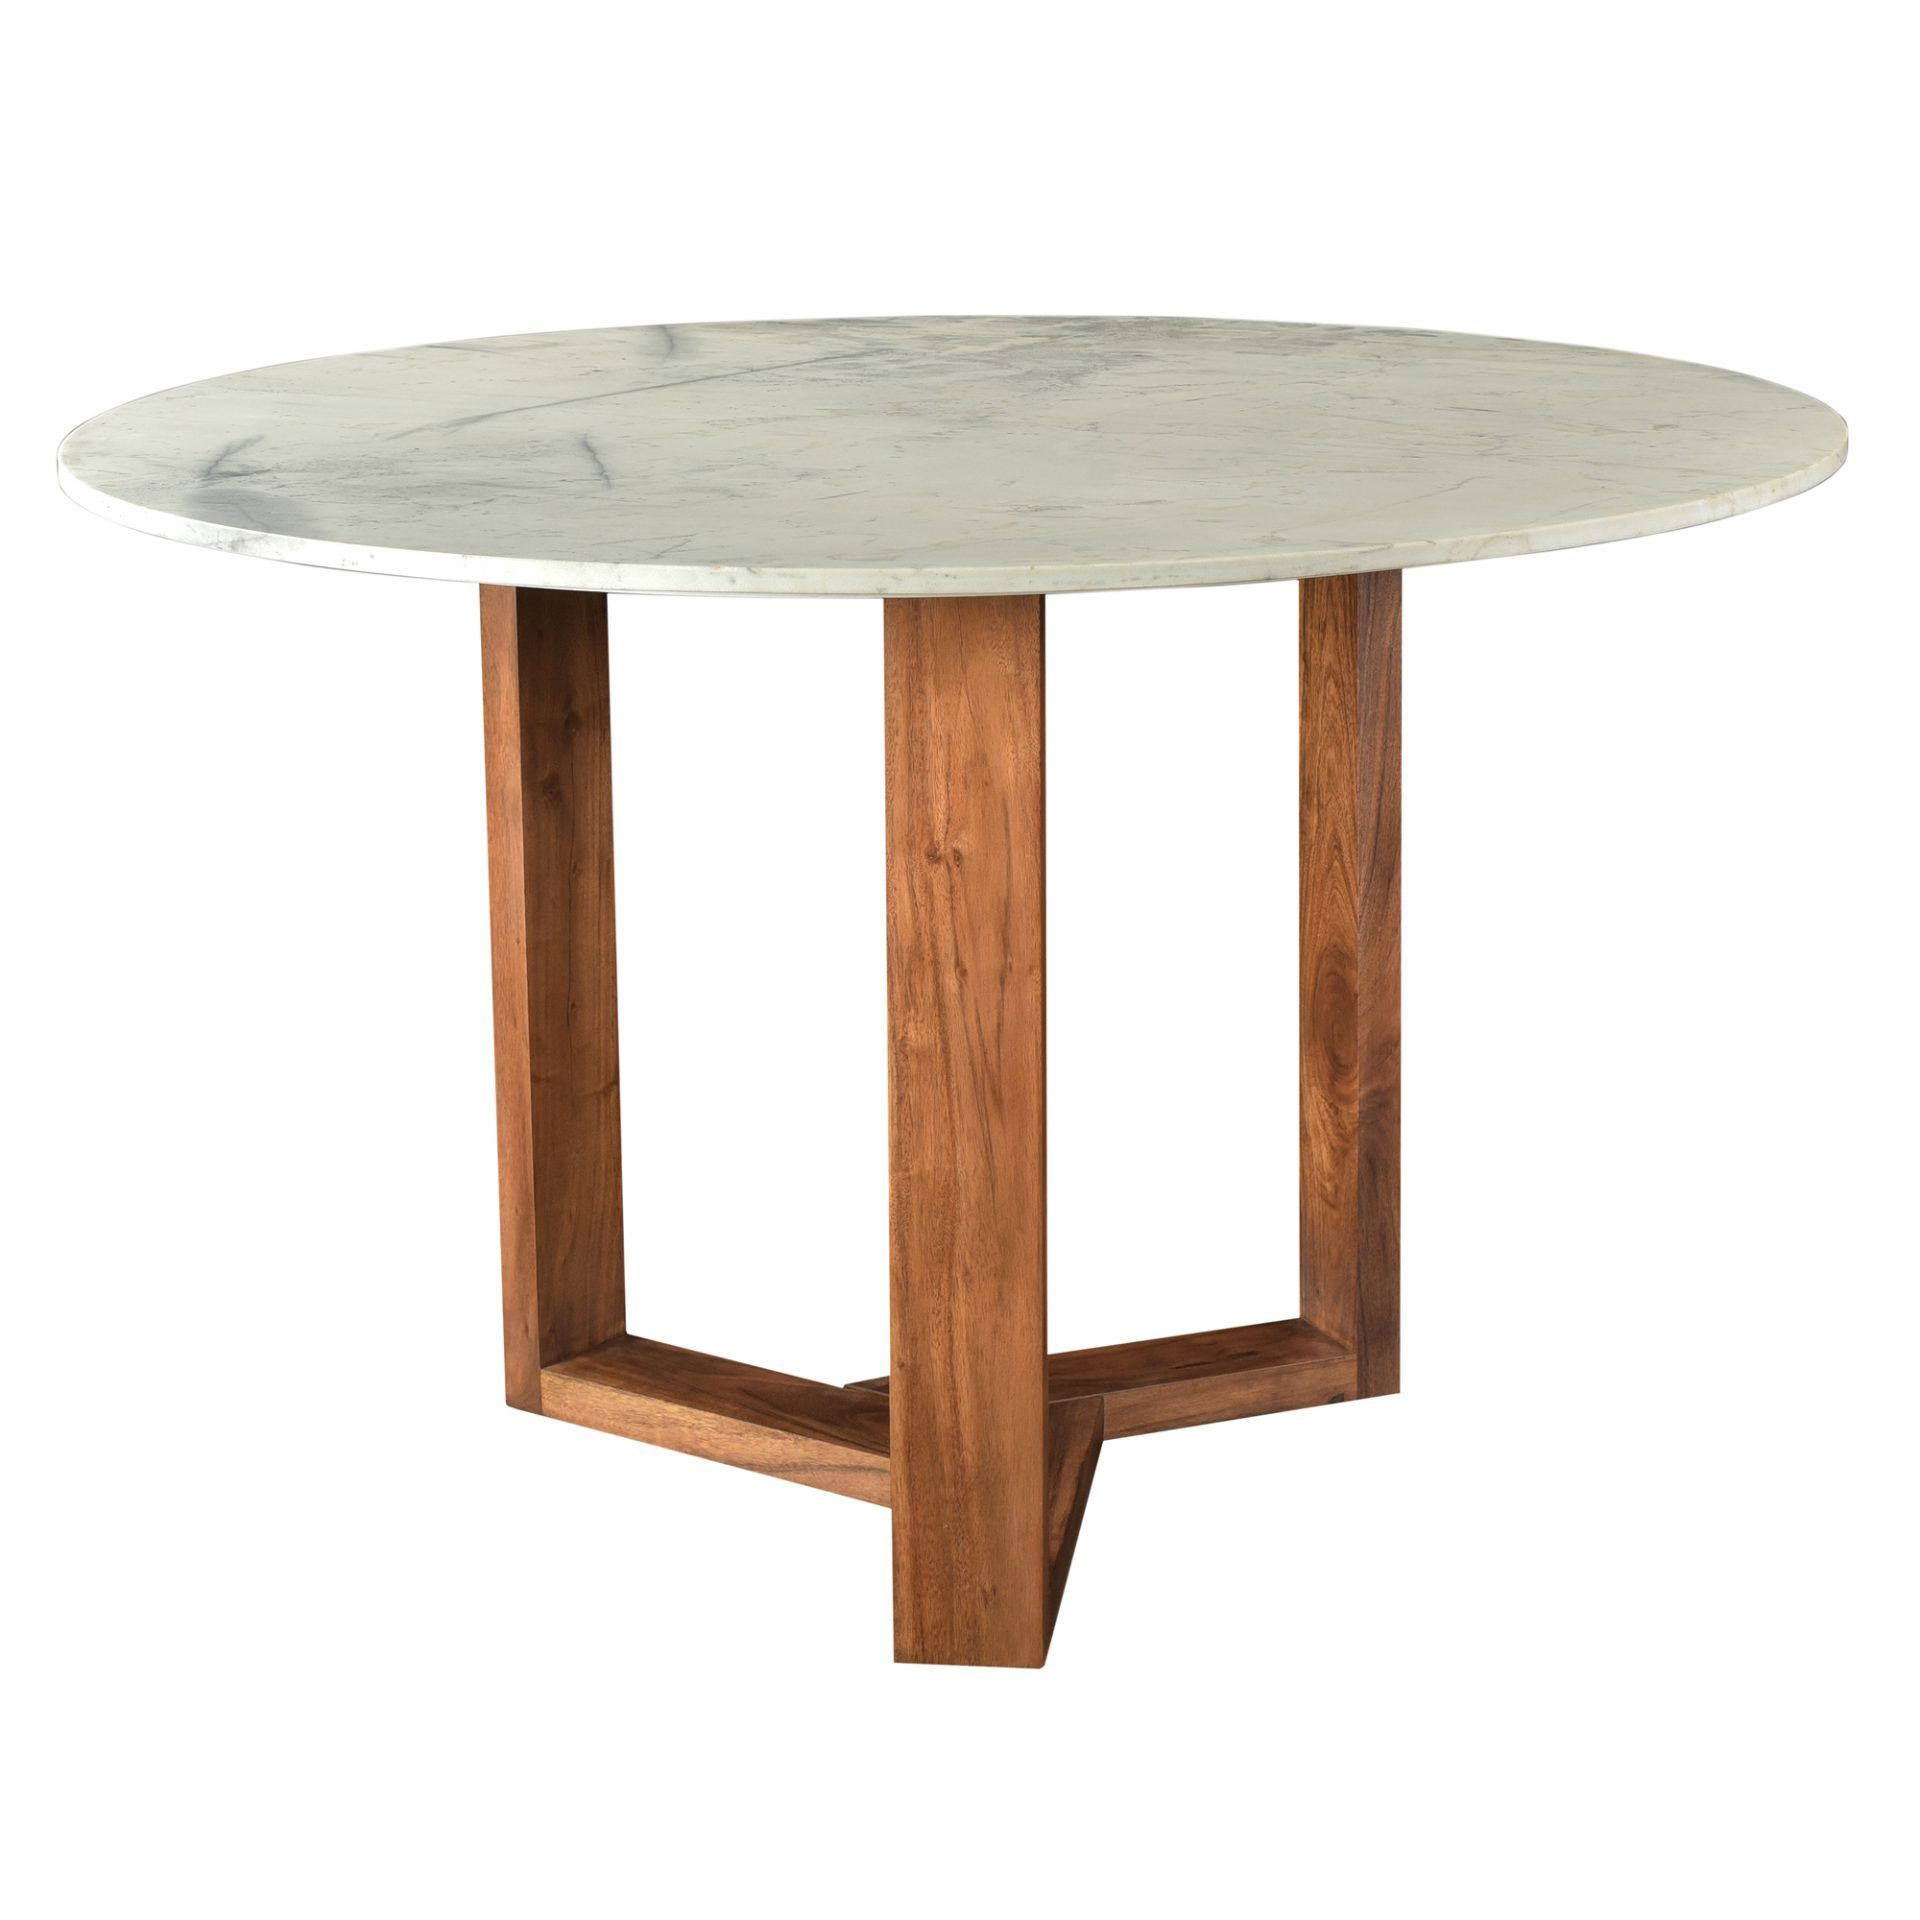 Rio Round Marble Dining Table with Wood Base